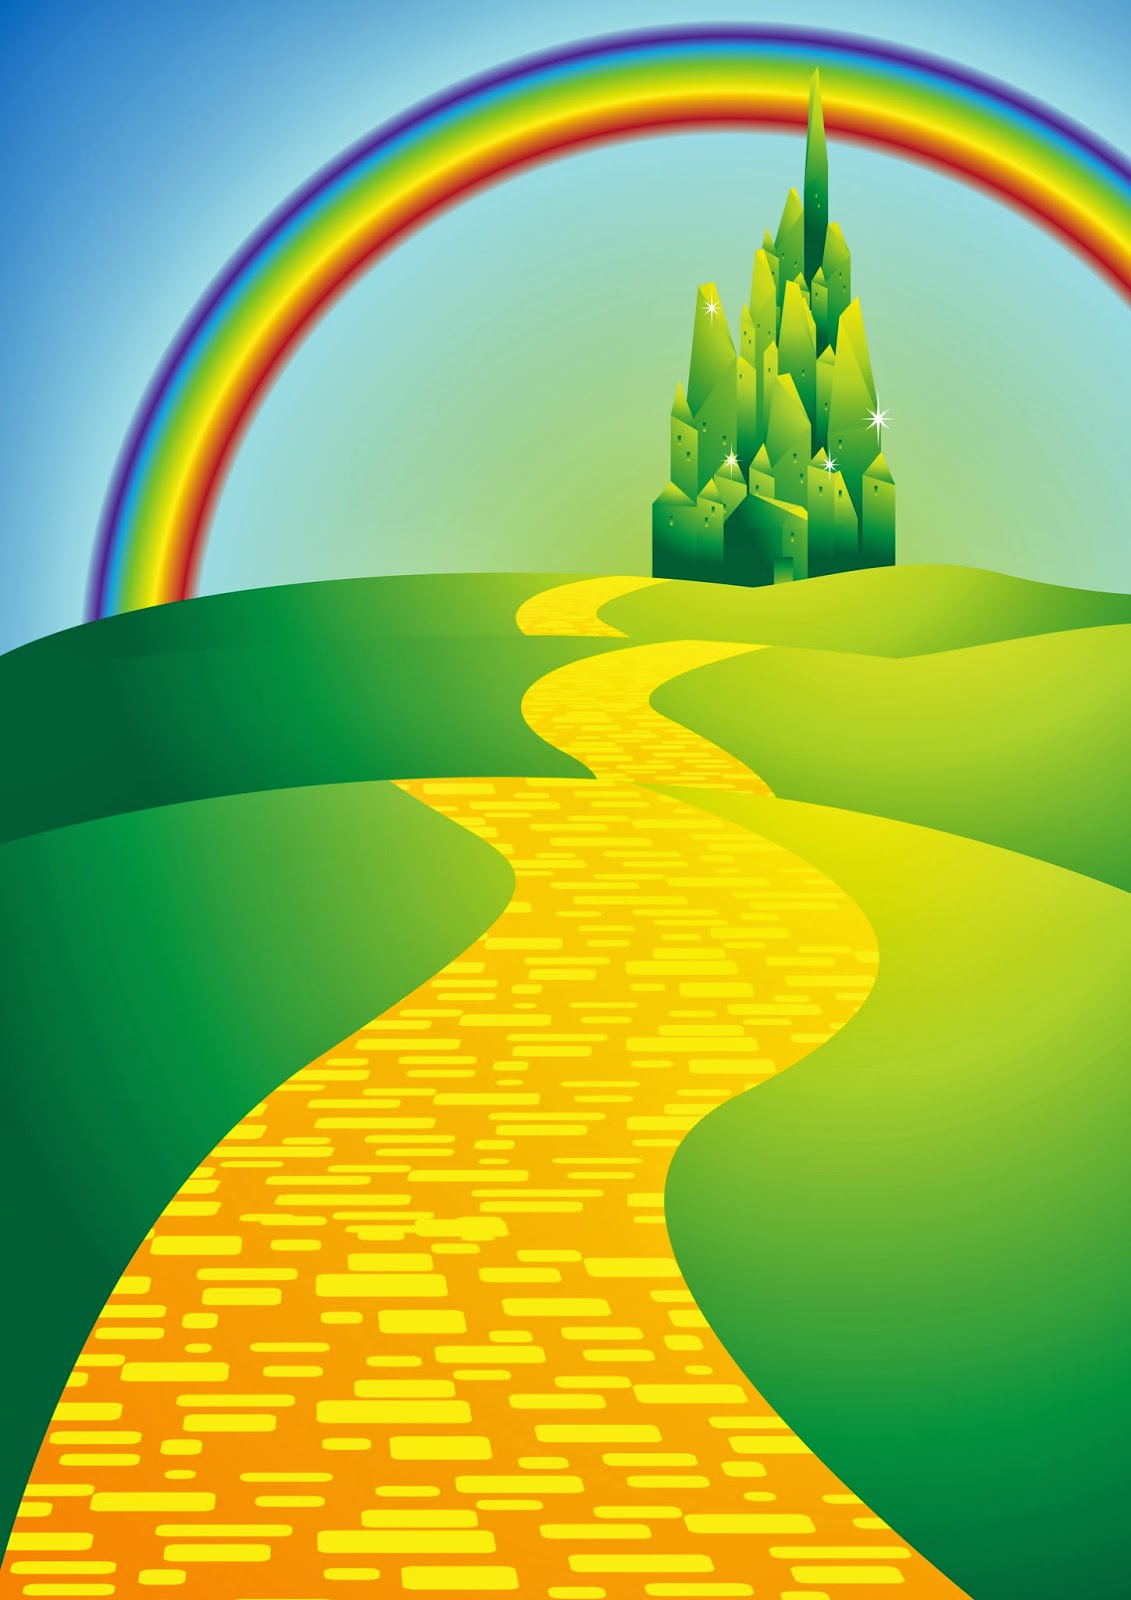 Wizard Of Oz clipart City Pictures emerald kid of